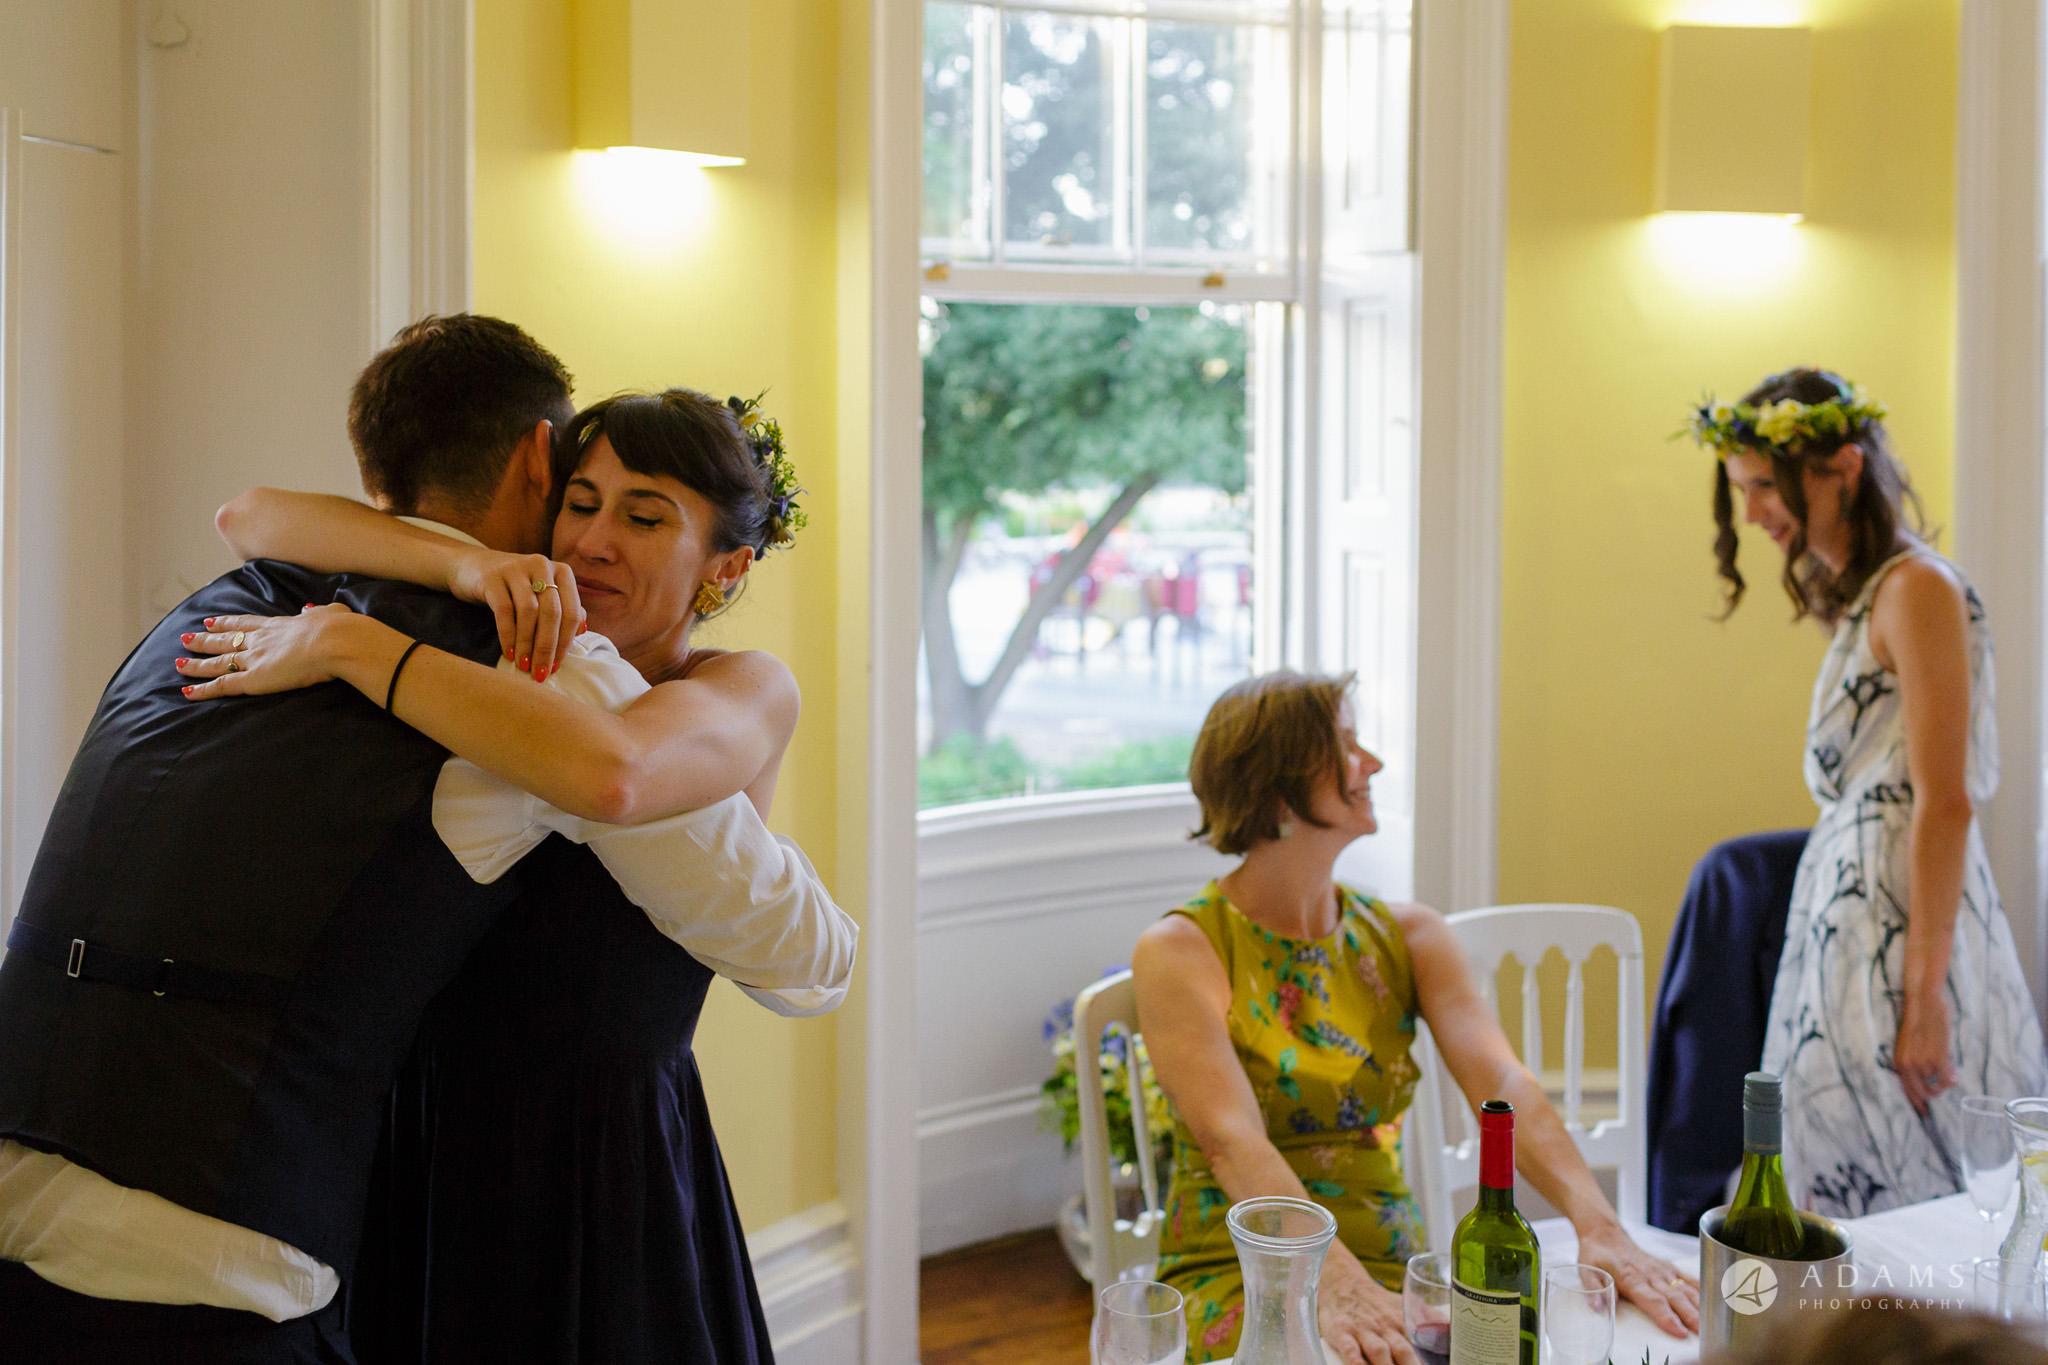 Clissold house wedding sister of the groom hugs him